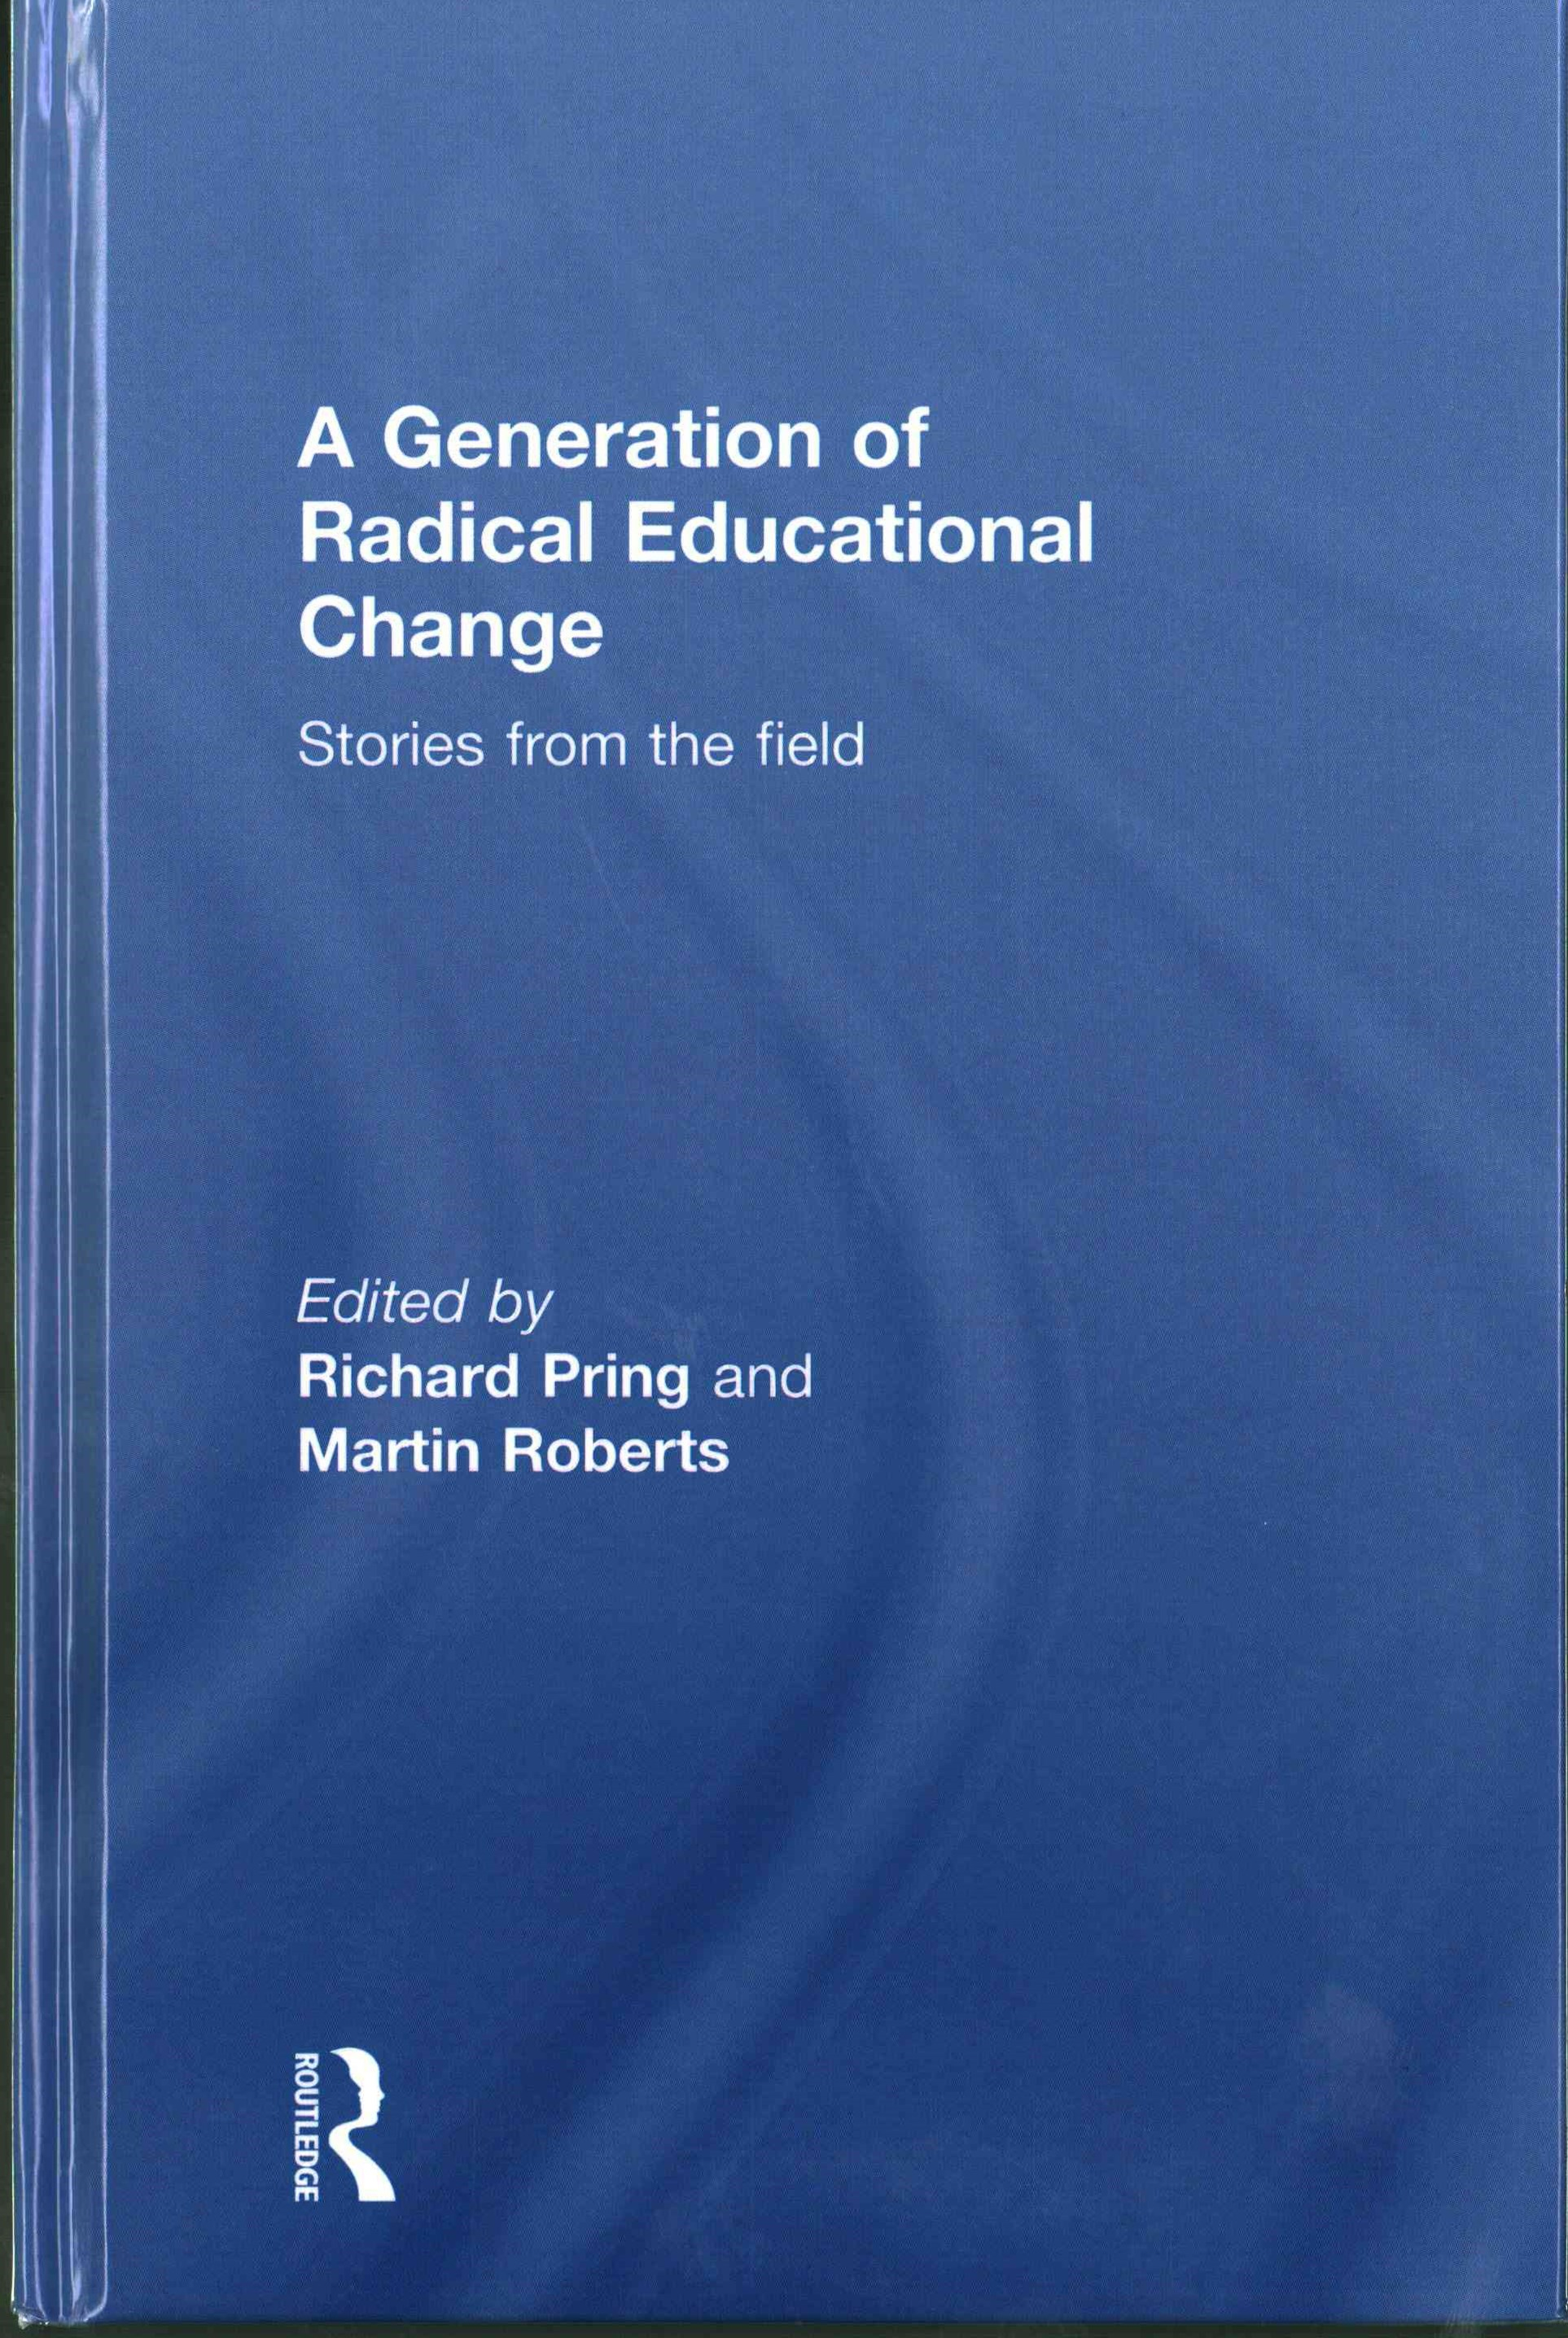 Generation of Radical Educational Change